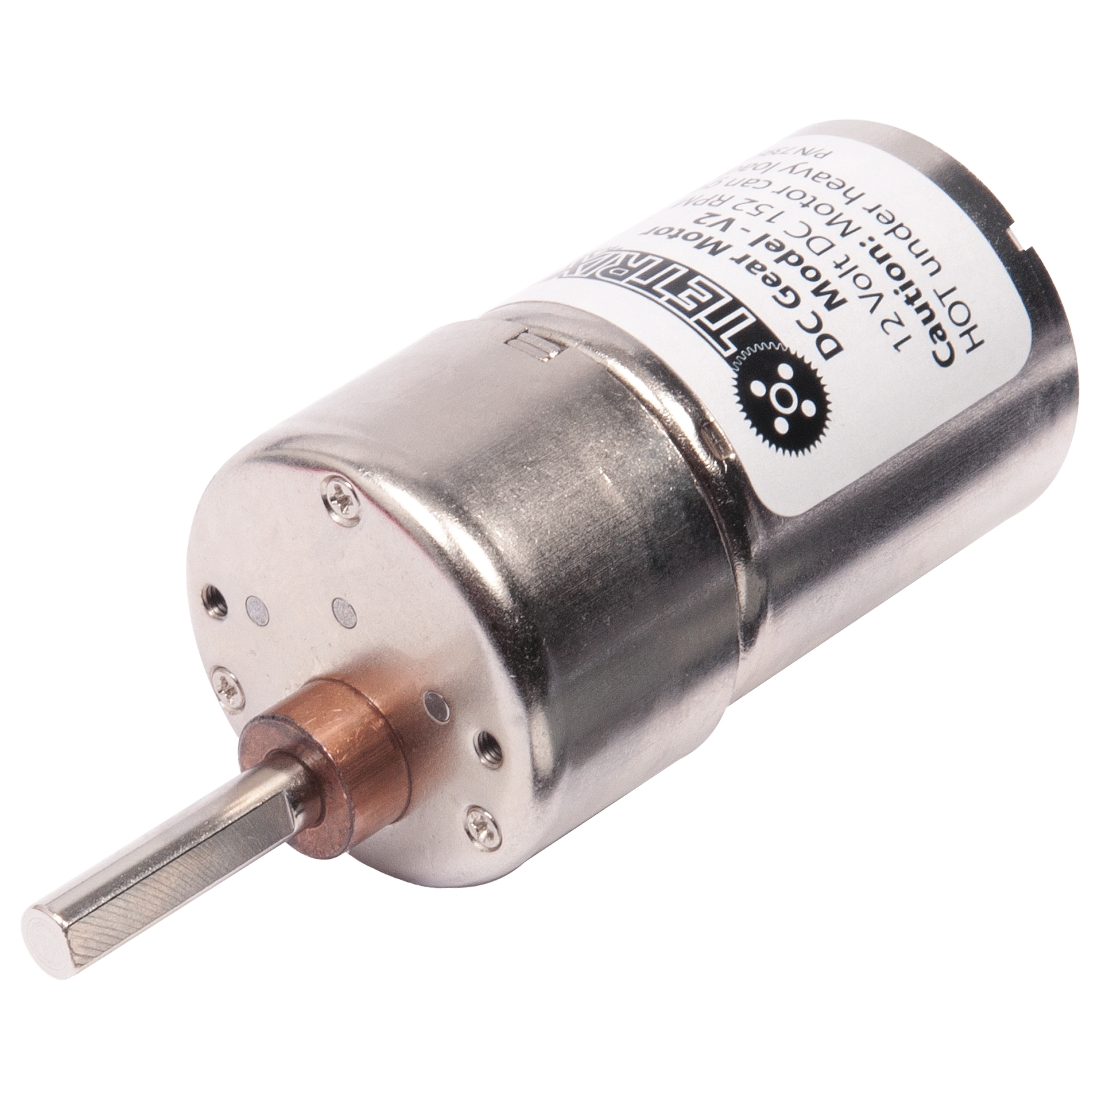 Tetrix max dc motor w39530 for What is dc motor